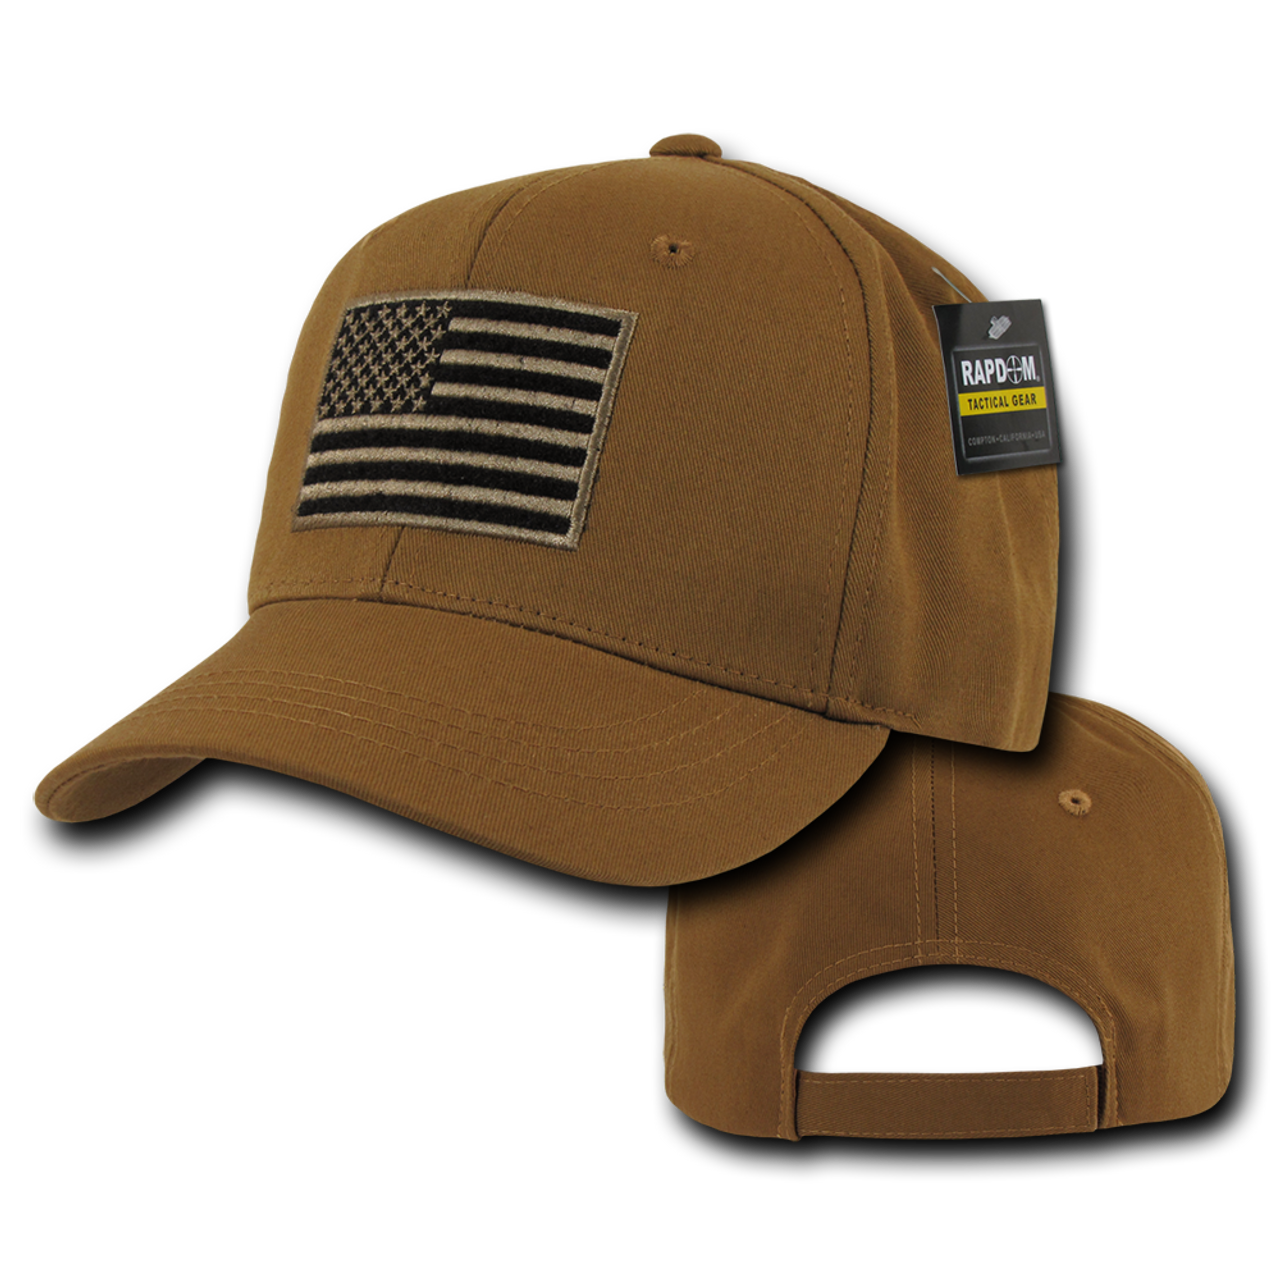 02a1dfd9e T76 - Tactical Operator Cap - American Flag Subdued - Coyote